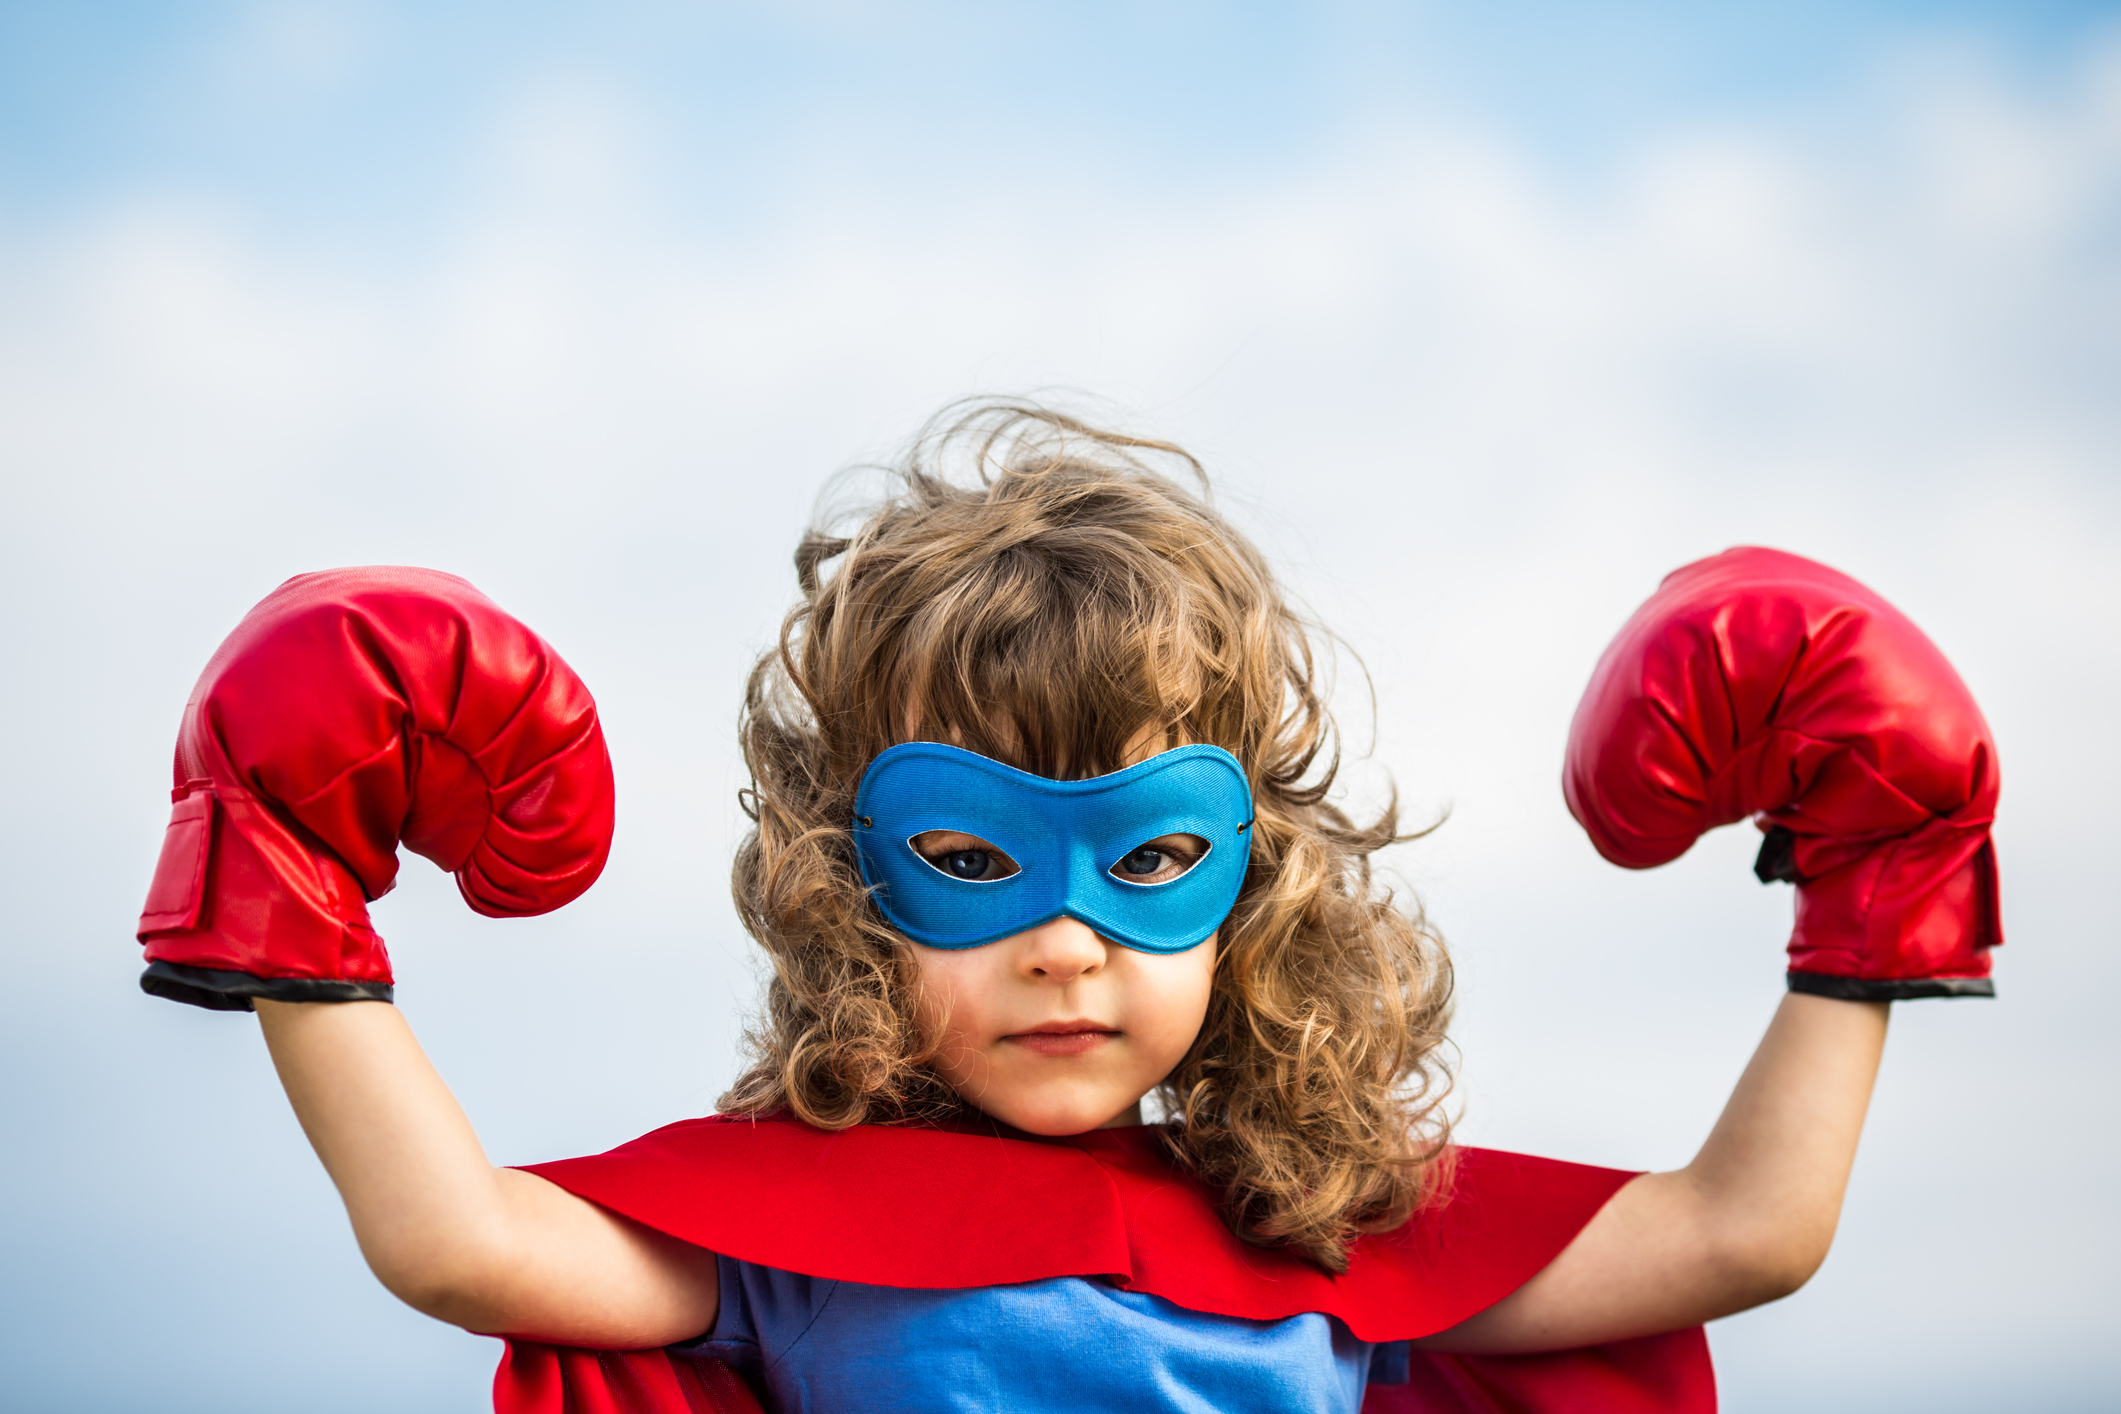 http://www.dreamstime.com/royalty-free-stock-photos-superhero-kid-girl-power-concept-wearing-boxing-gloves-against-blue-sky-background-feminism-image33949968